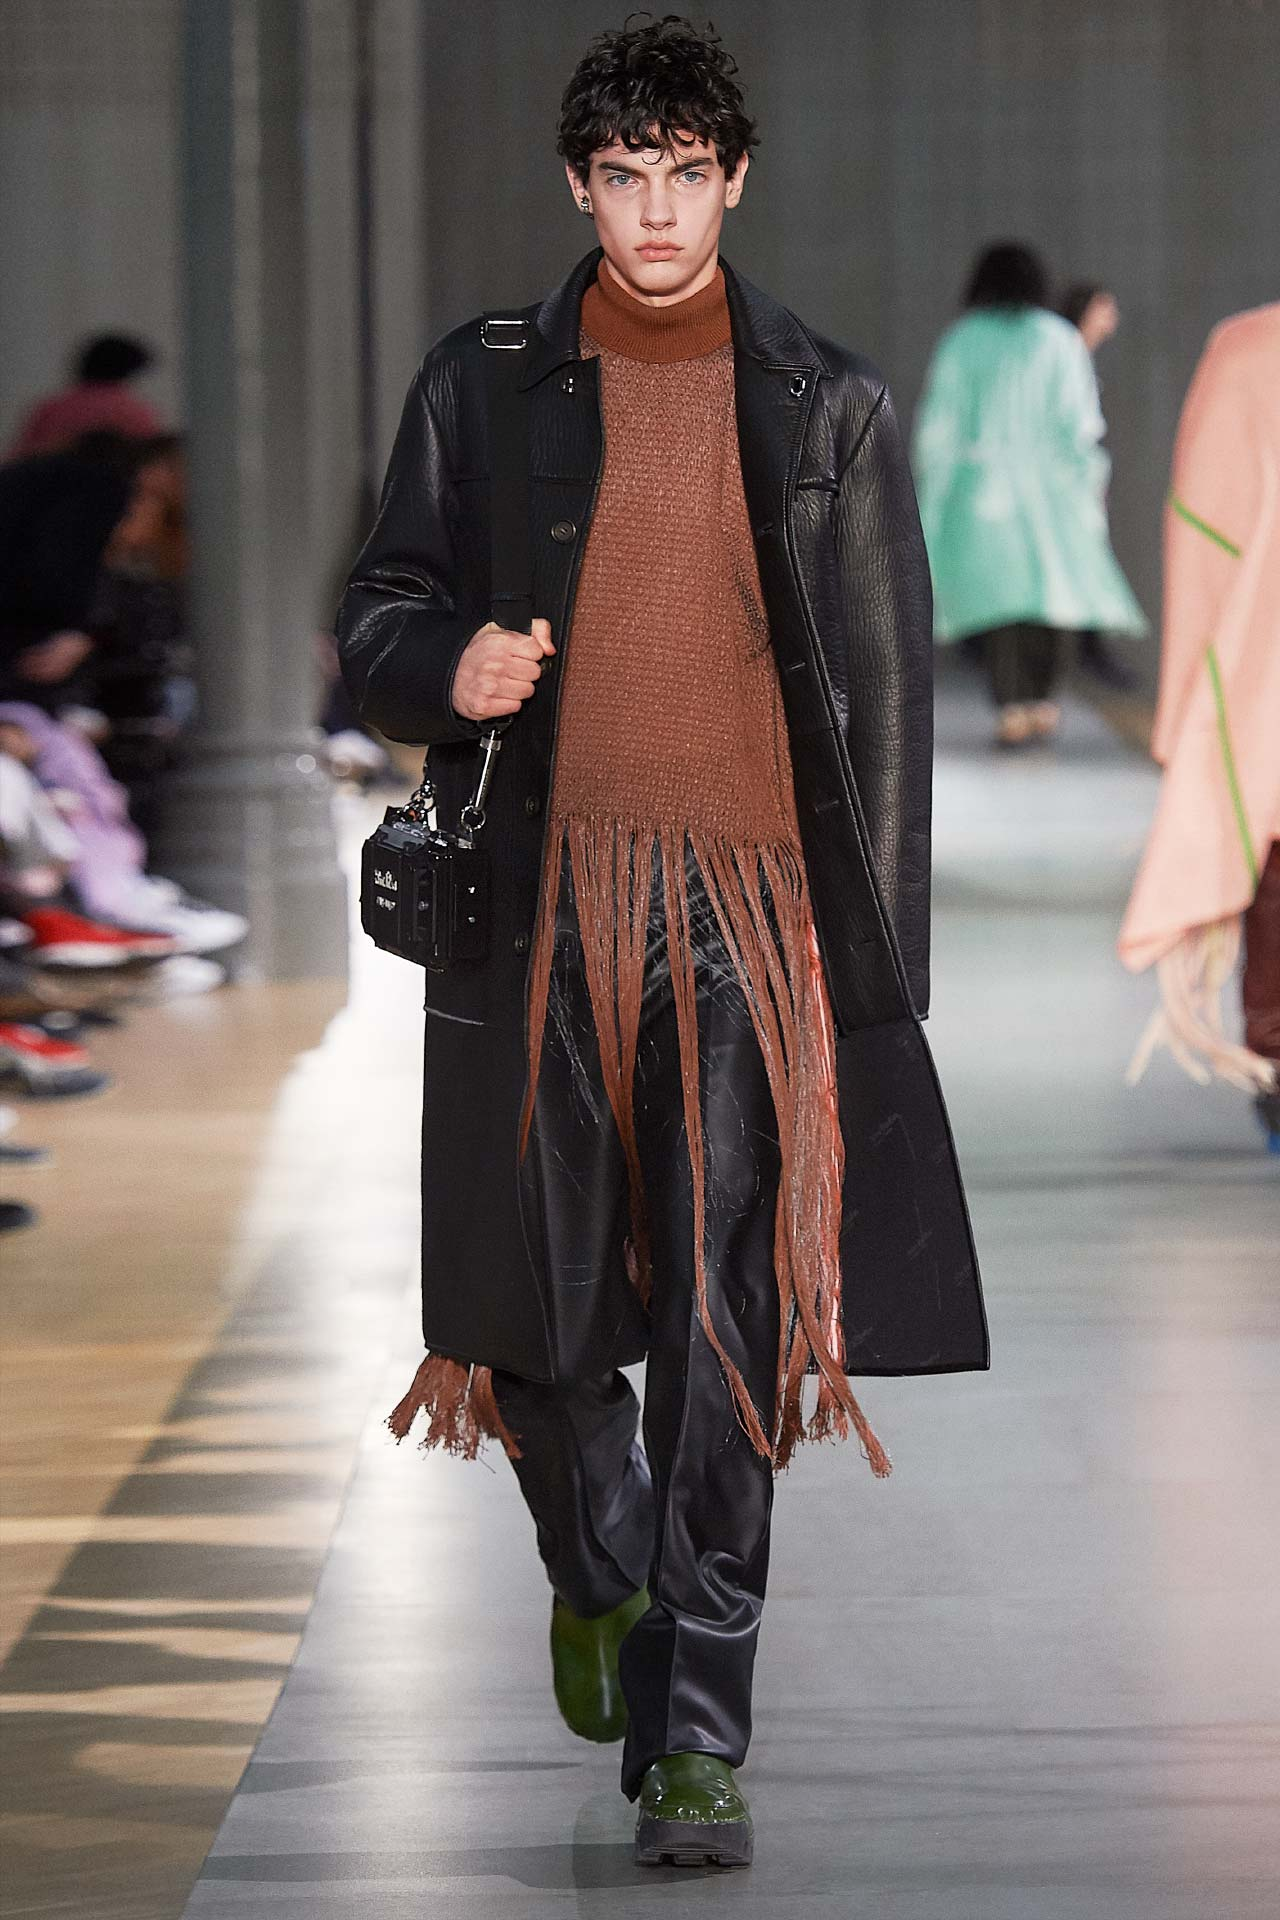 Look Fall/Winter 2019, image 36